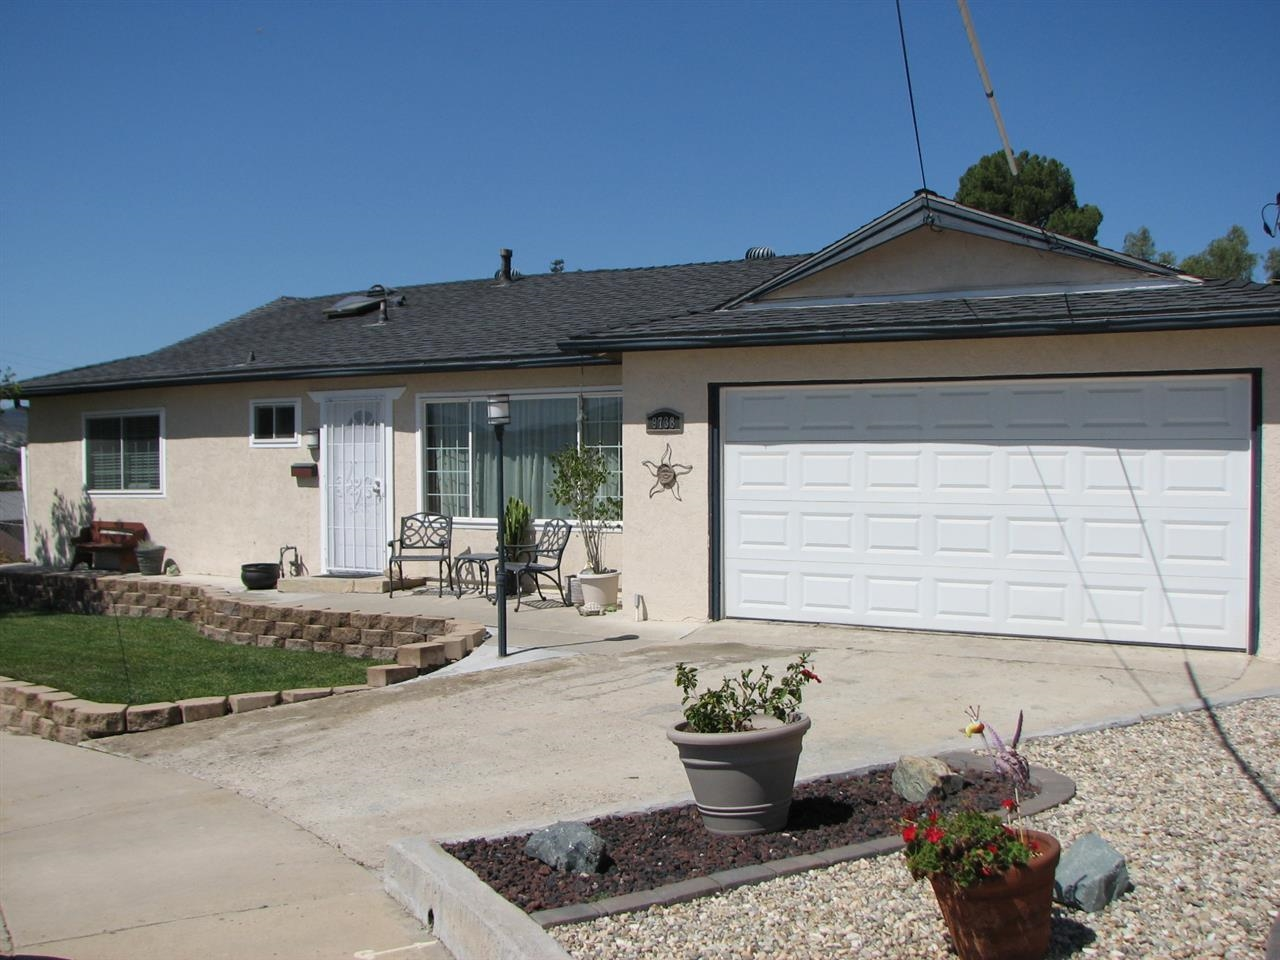 Main Photo: Home for sale : 4 bedrooms : 9738 Ramo Ct in Santee